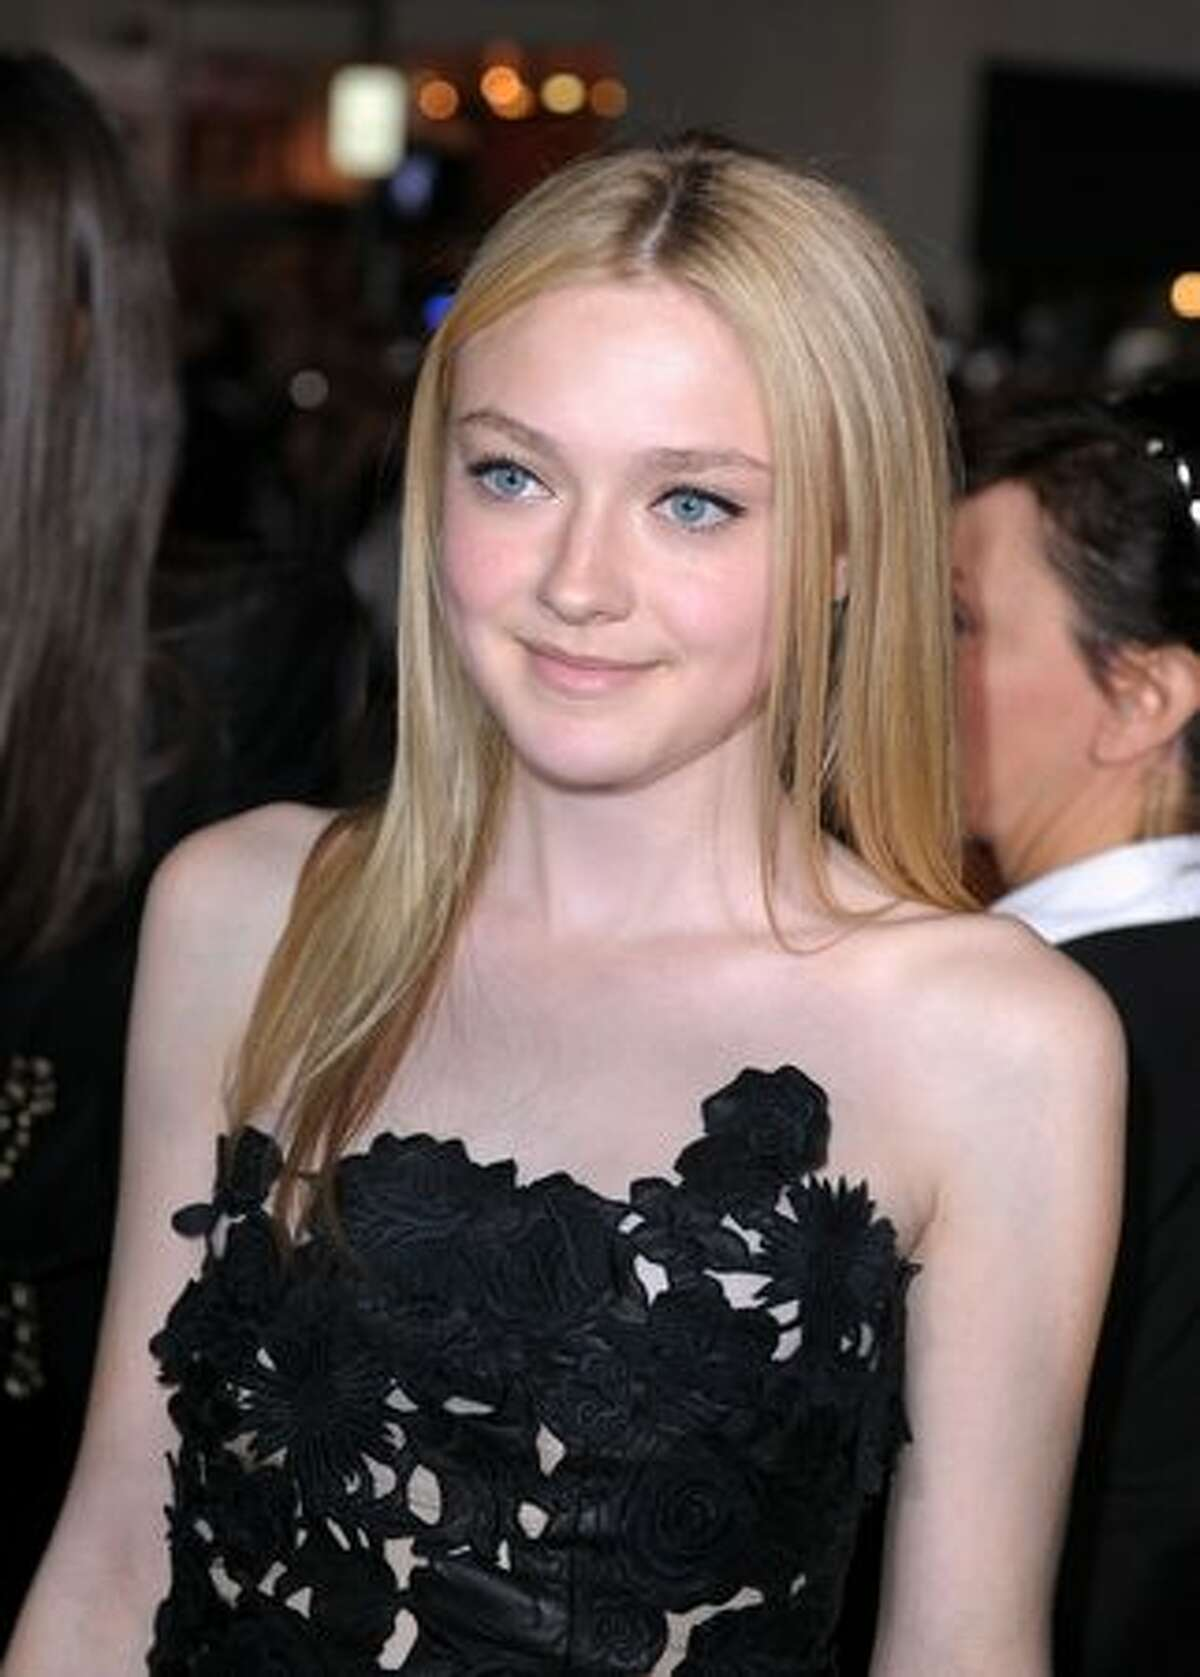 Actress Dakota Fanning arrives to the premiere of Summit Entertainment's